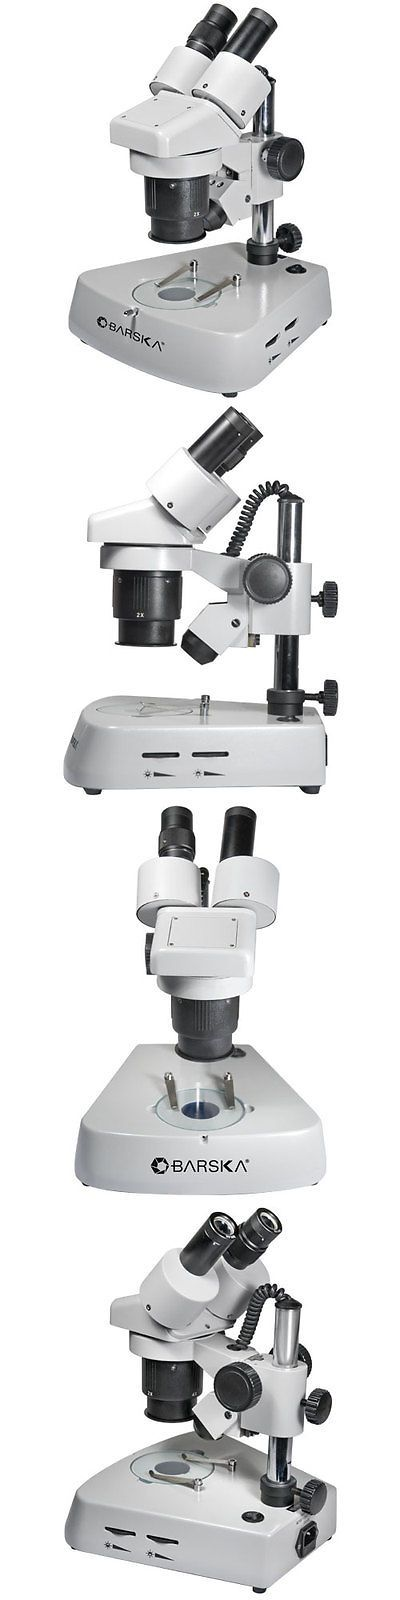 Microscopes and Chemistry 2568: Barska 20X, 40X Binocular Stereo Microscope With Head Rotates 360° Lab, Ay11228 -> BUY IT NOW ONLY: $249.99 on eBay!